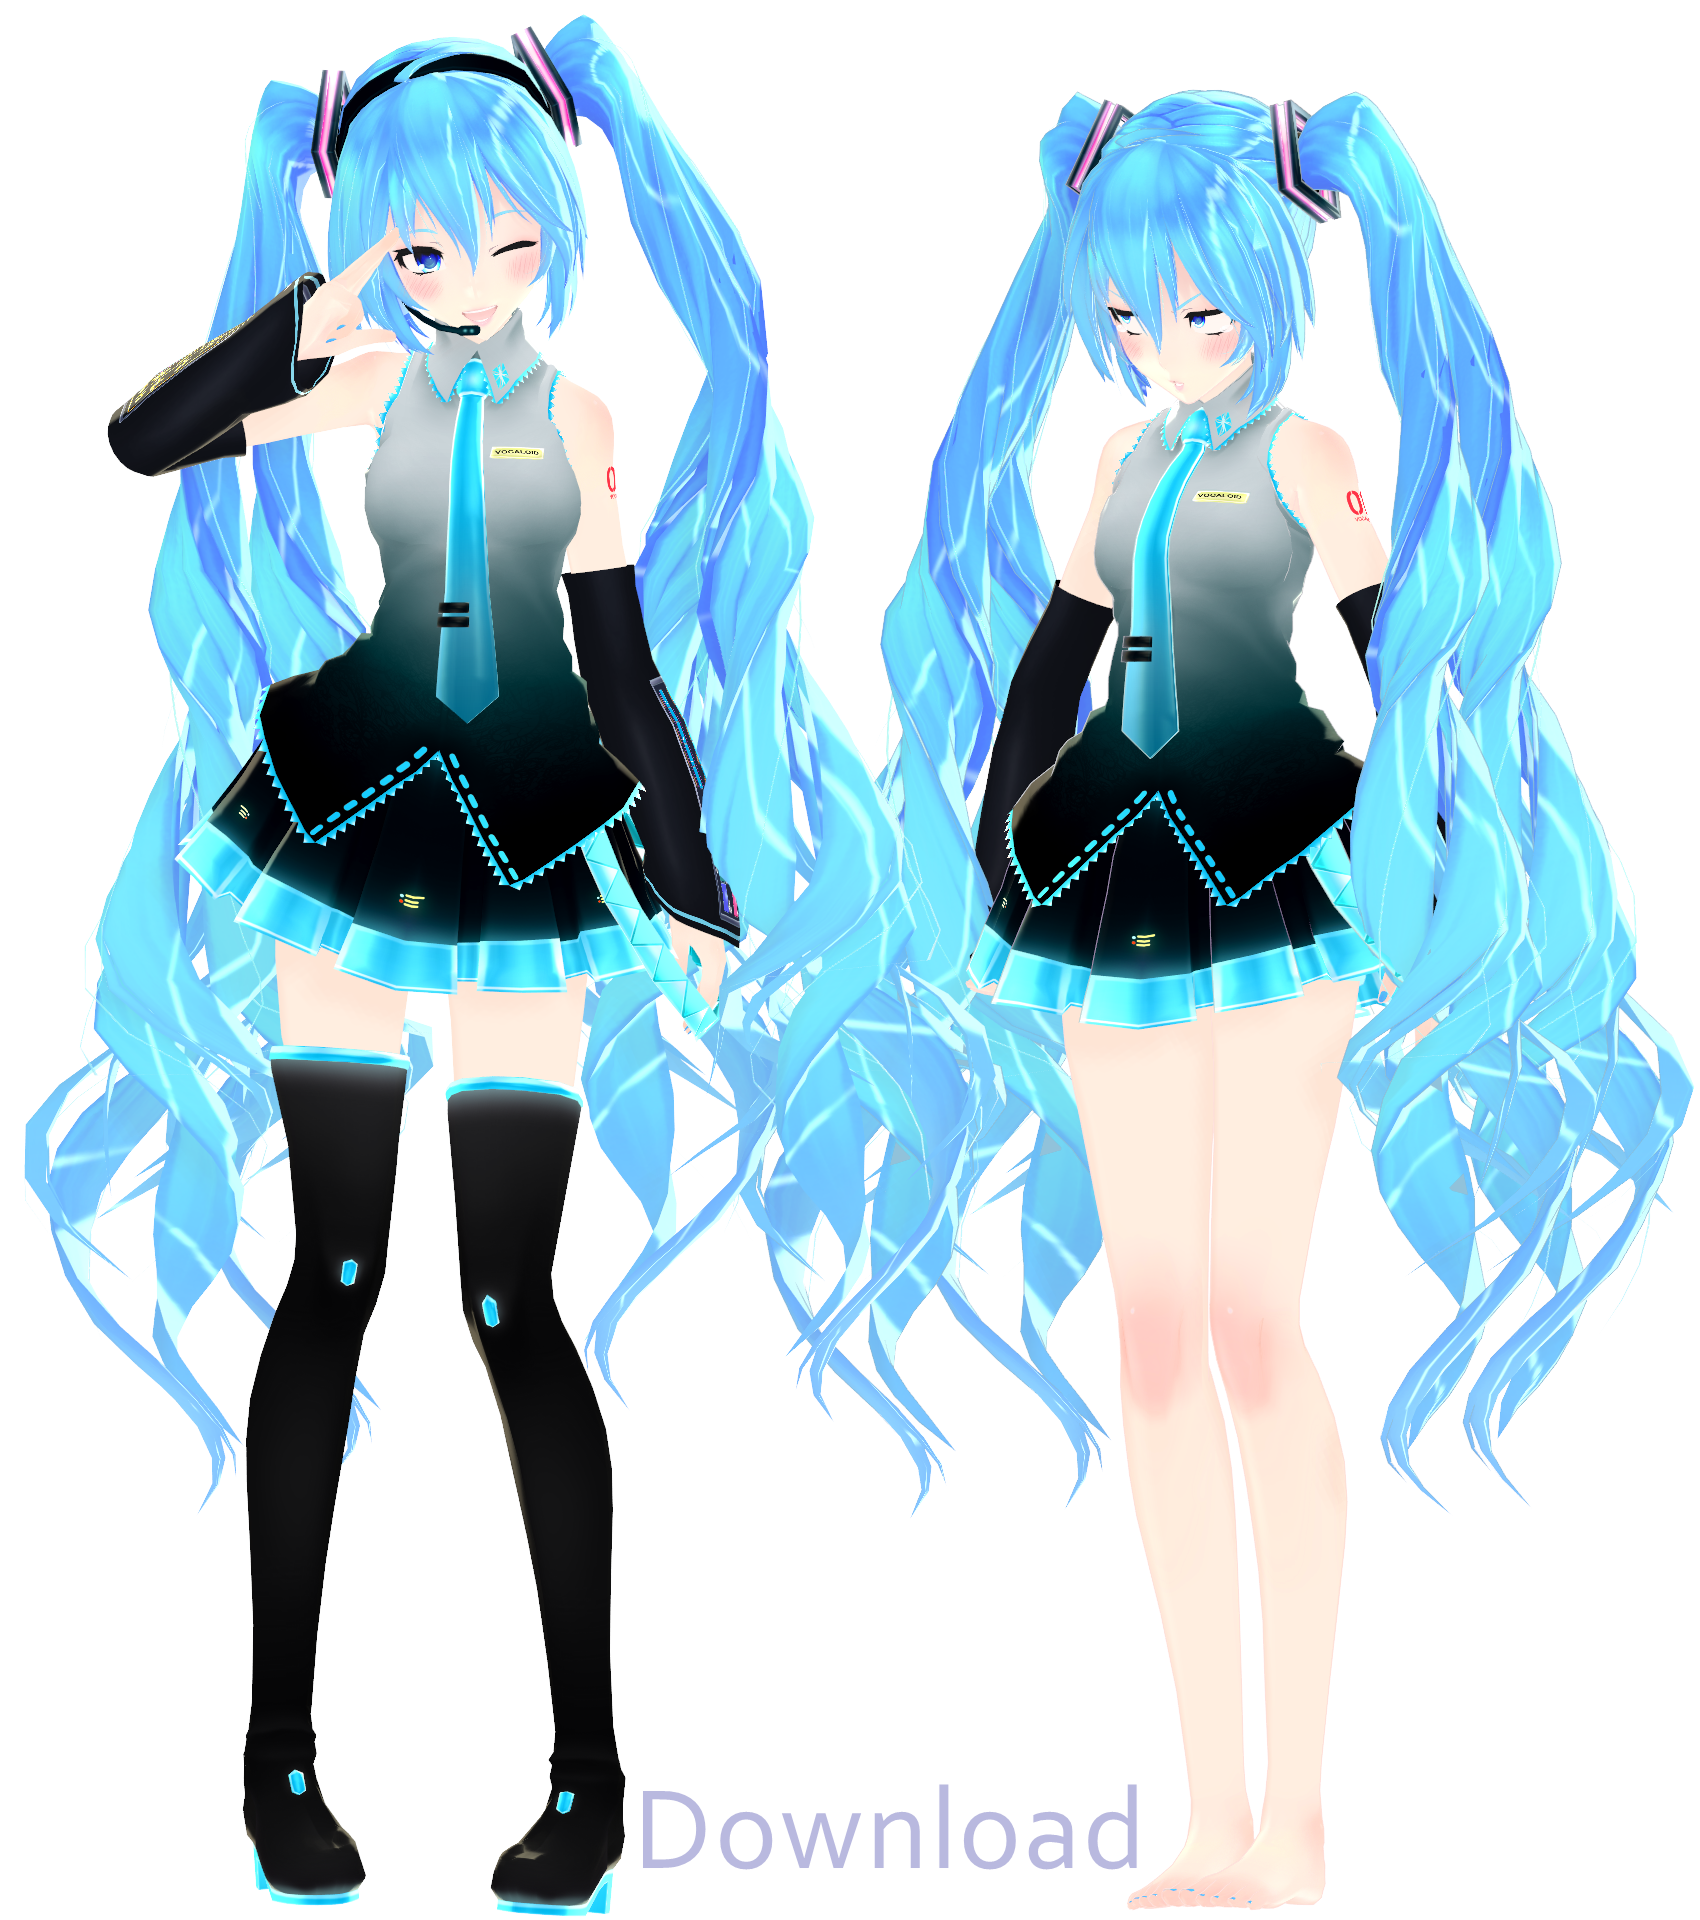 Mmd miku model download zip